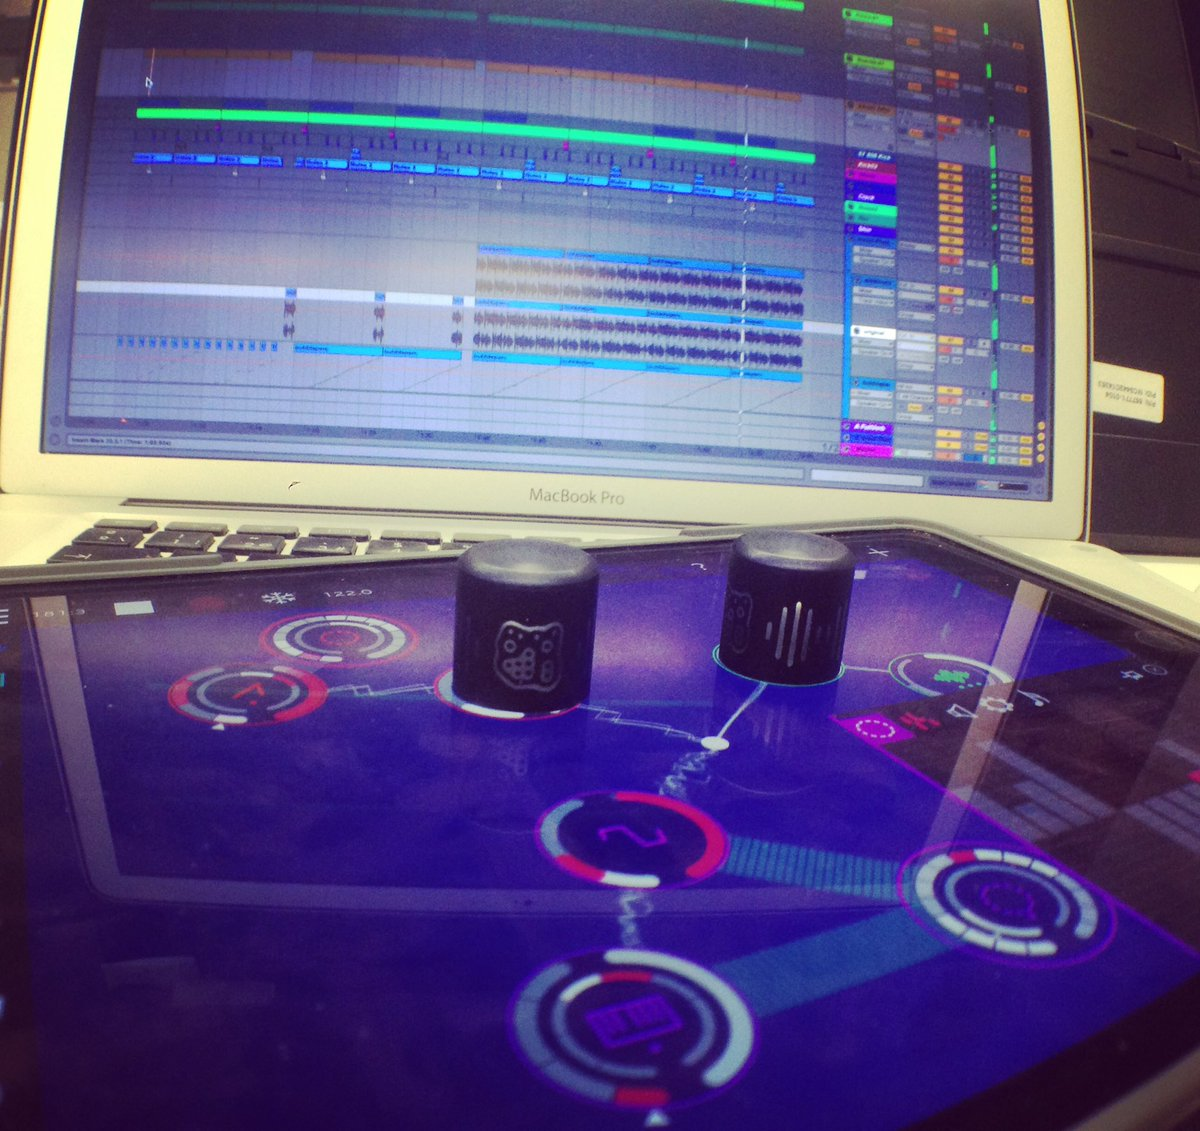 ROTOR perfectly syncing w/@Ableton link @reactable -on the App Store #music #technology #rotor #ipad #live #ableton https://t.co/GbIPHRjVnD